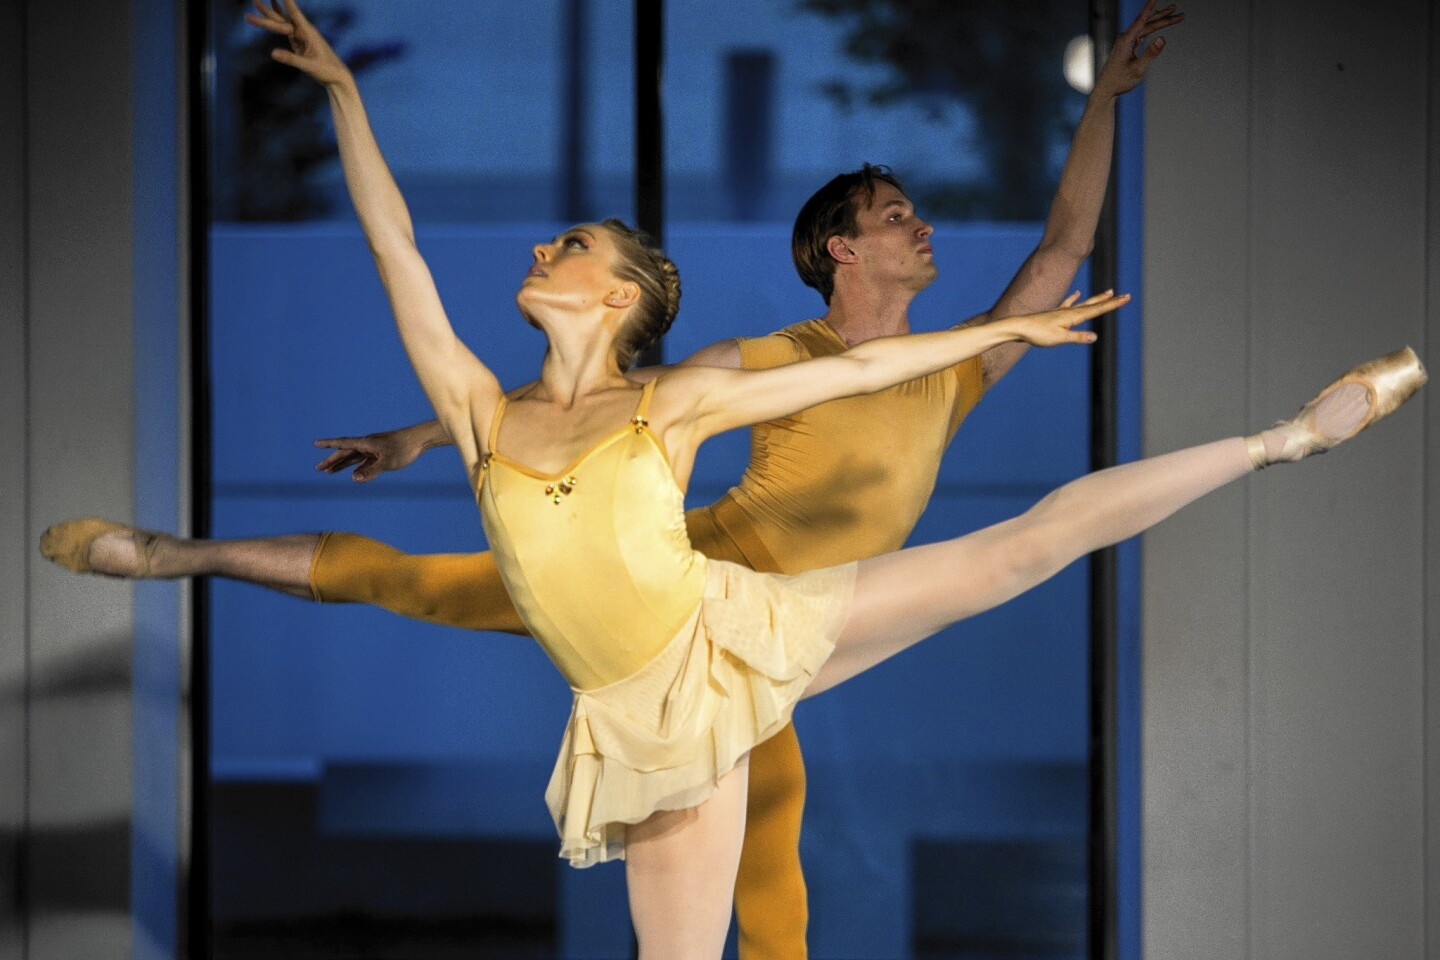 Alisha Brach and Colby Parsons interpret Tchaikovsky's Piano Trio in A Minor, Op. 50 during American Contemporary Ballet's performance at ACB DanceSpace.